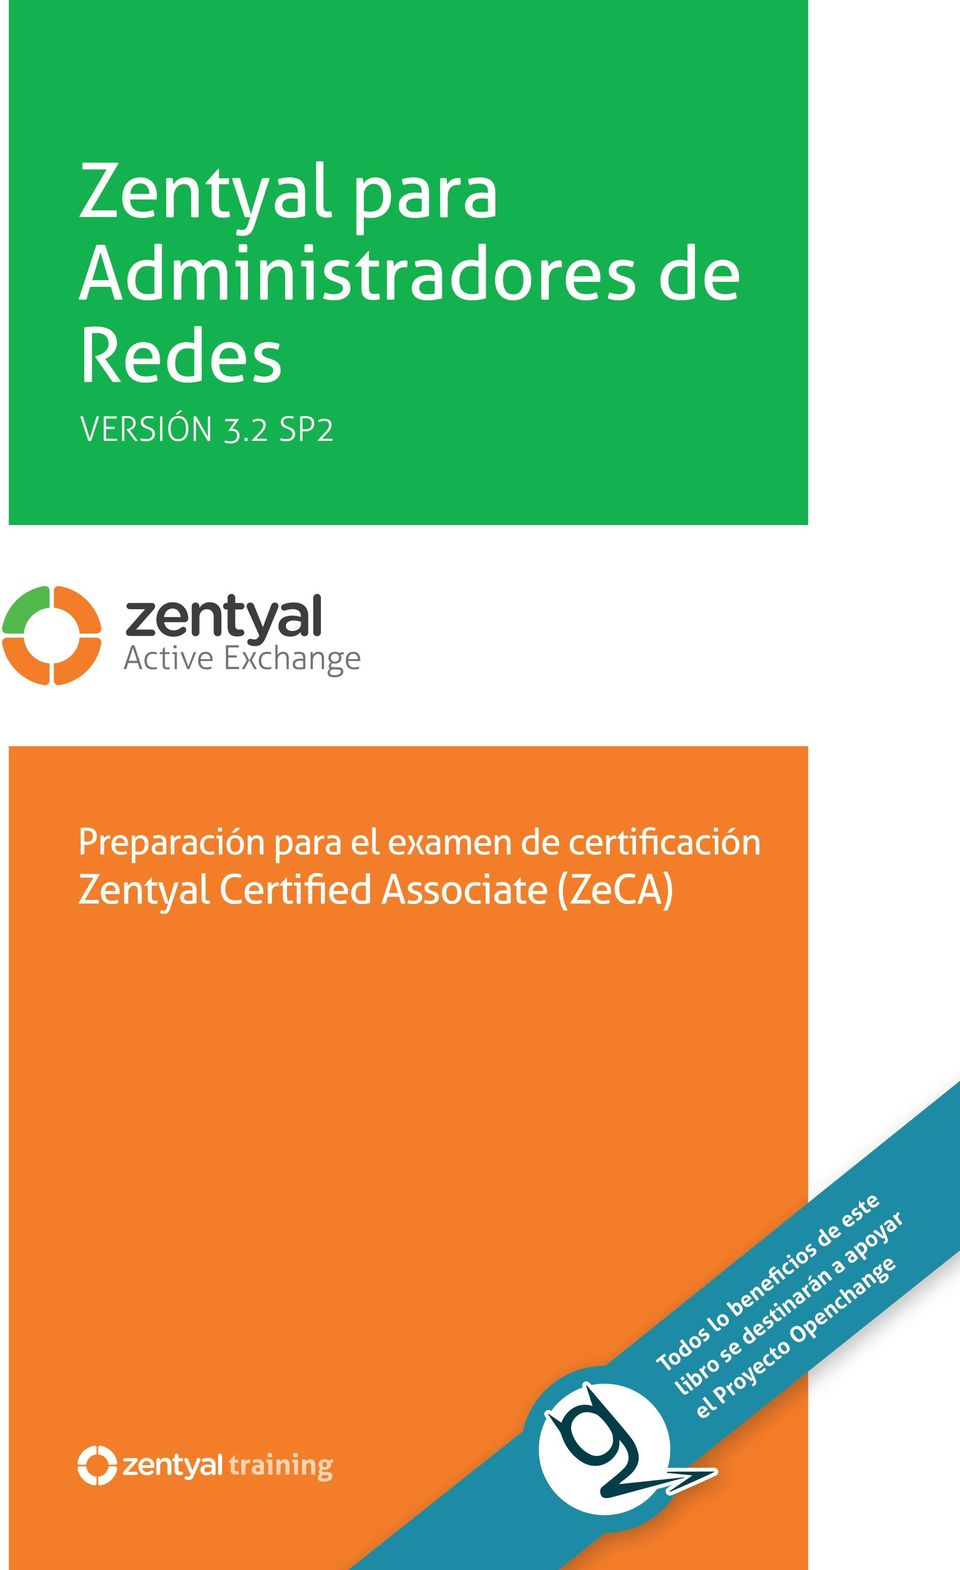 Zentyal Certified Associate (ZeCA) Todos lo